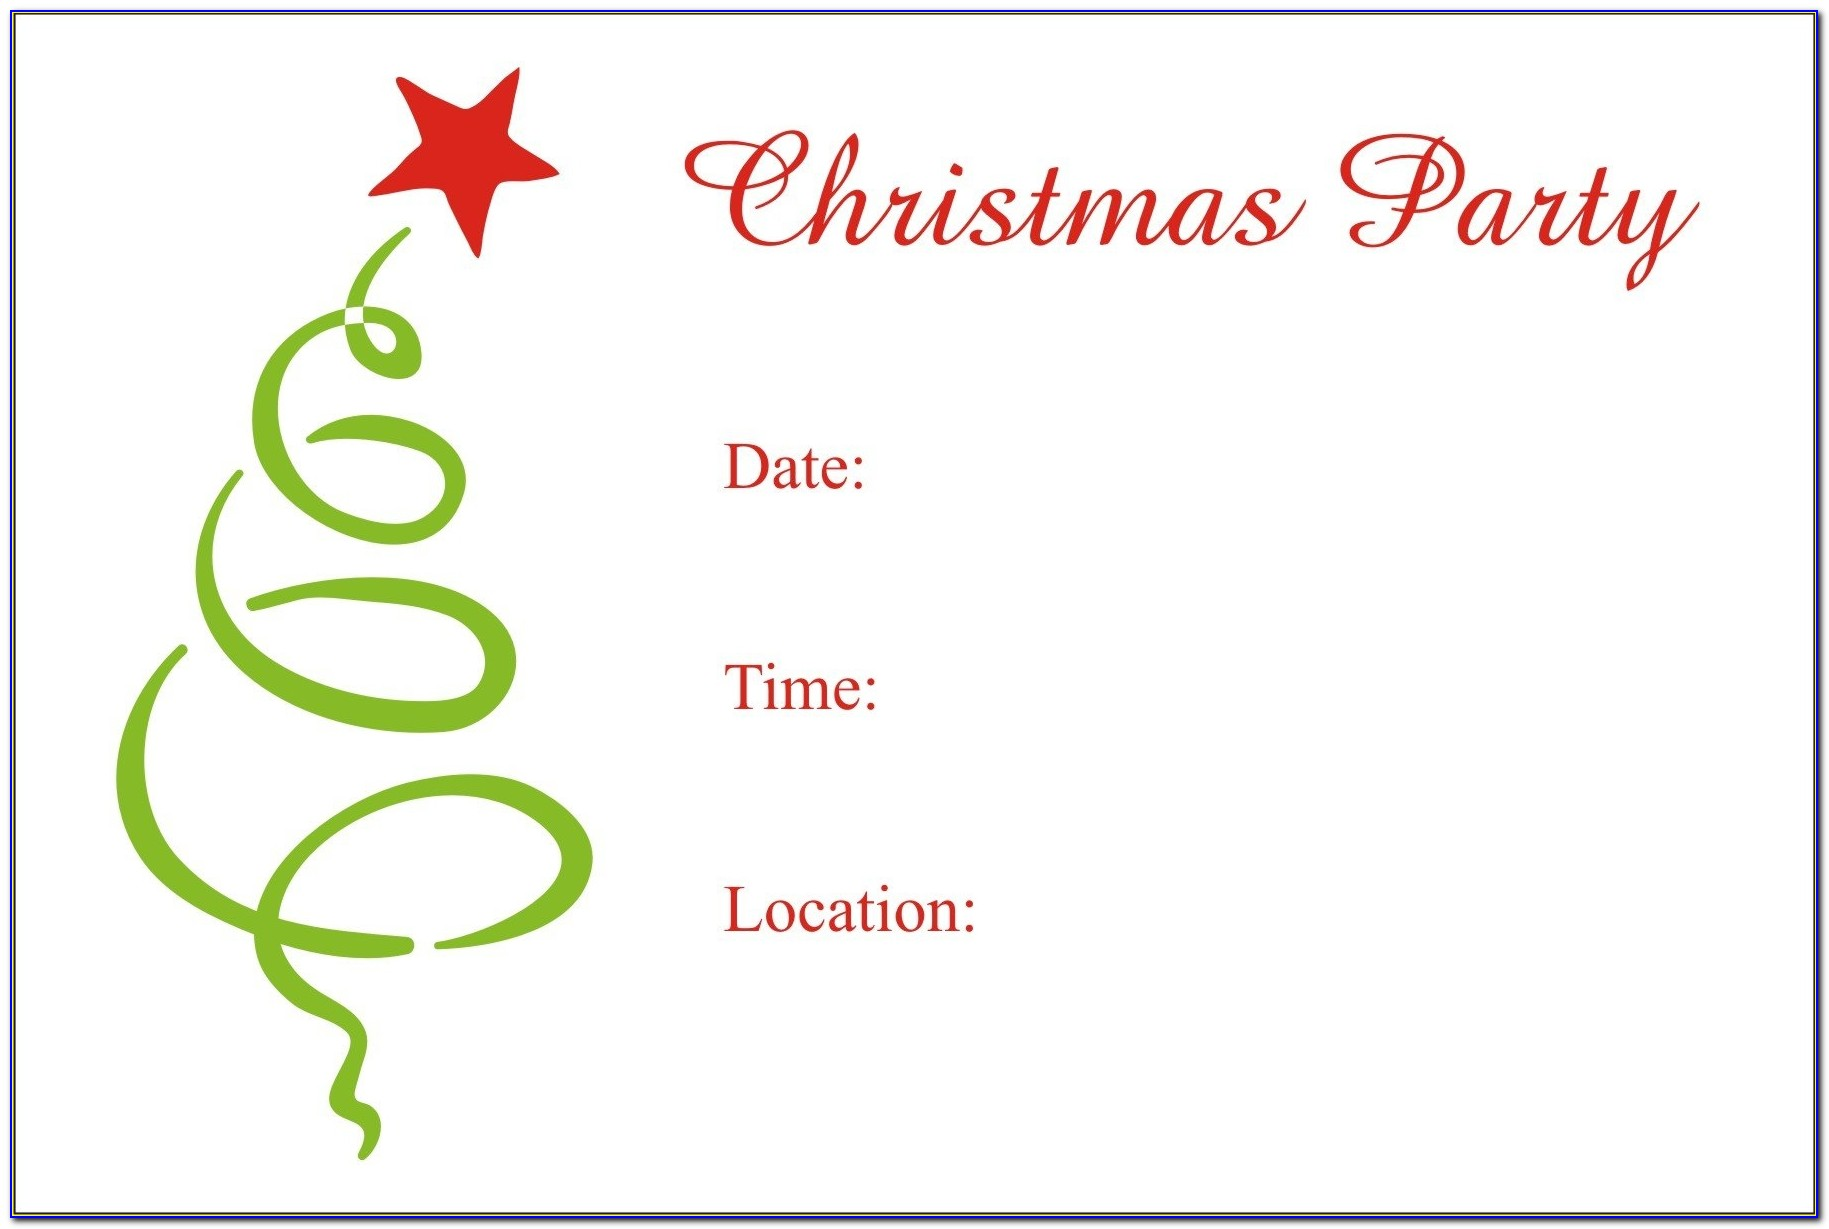 Christmas Invitations Online Free Targer.golden Dragon.co Intended For Holiday Party Invitation Template Word